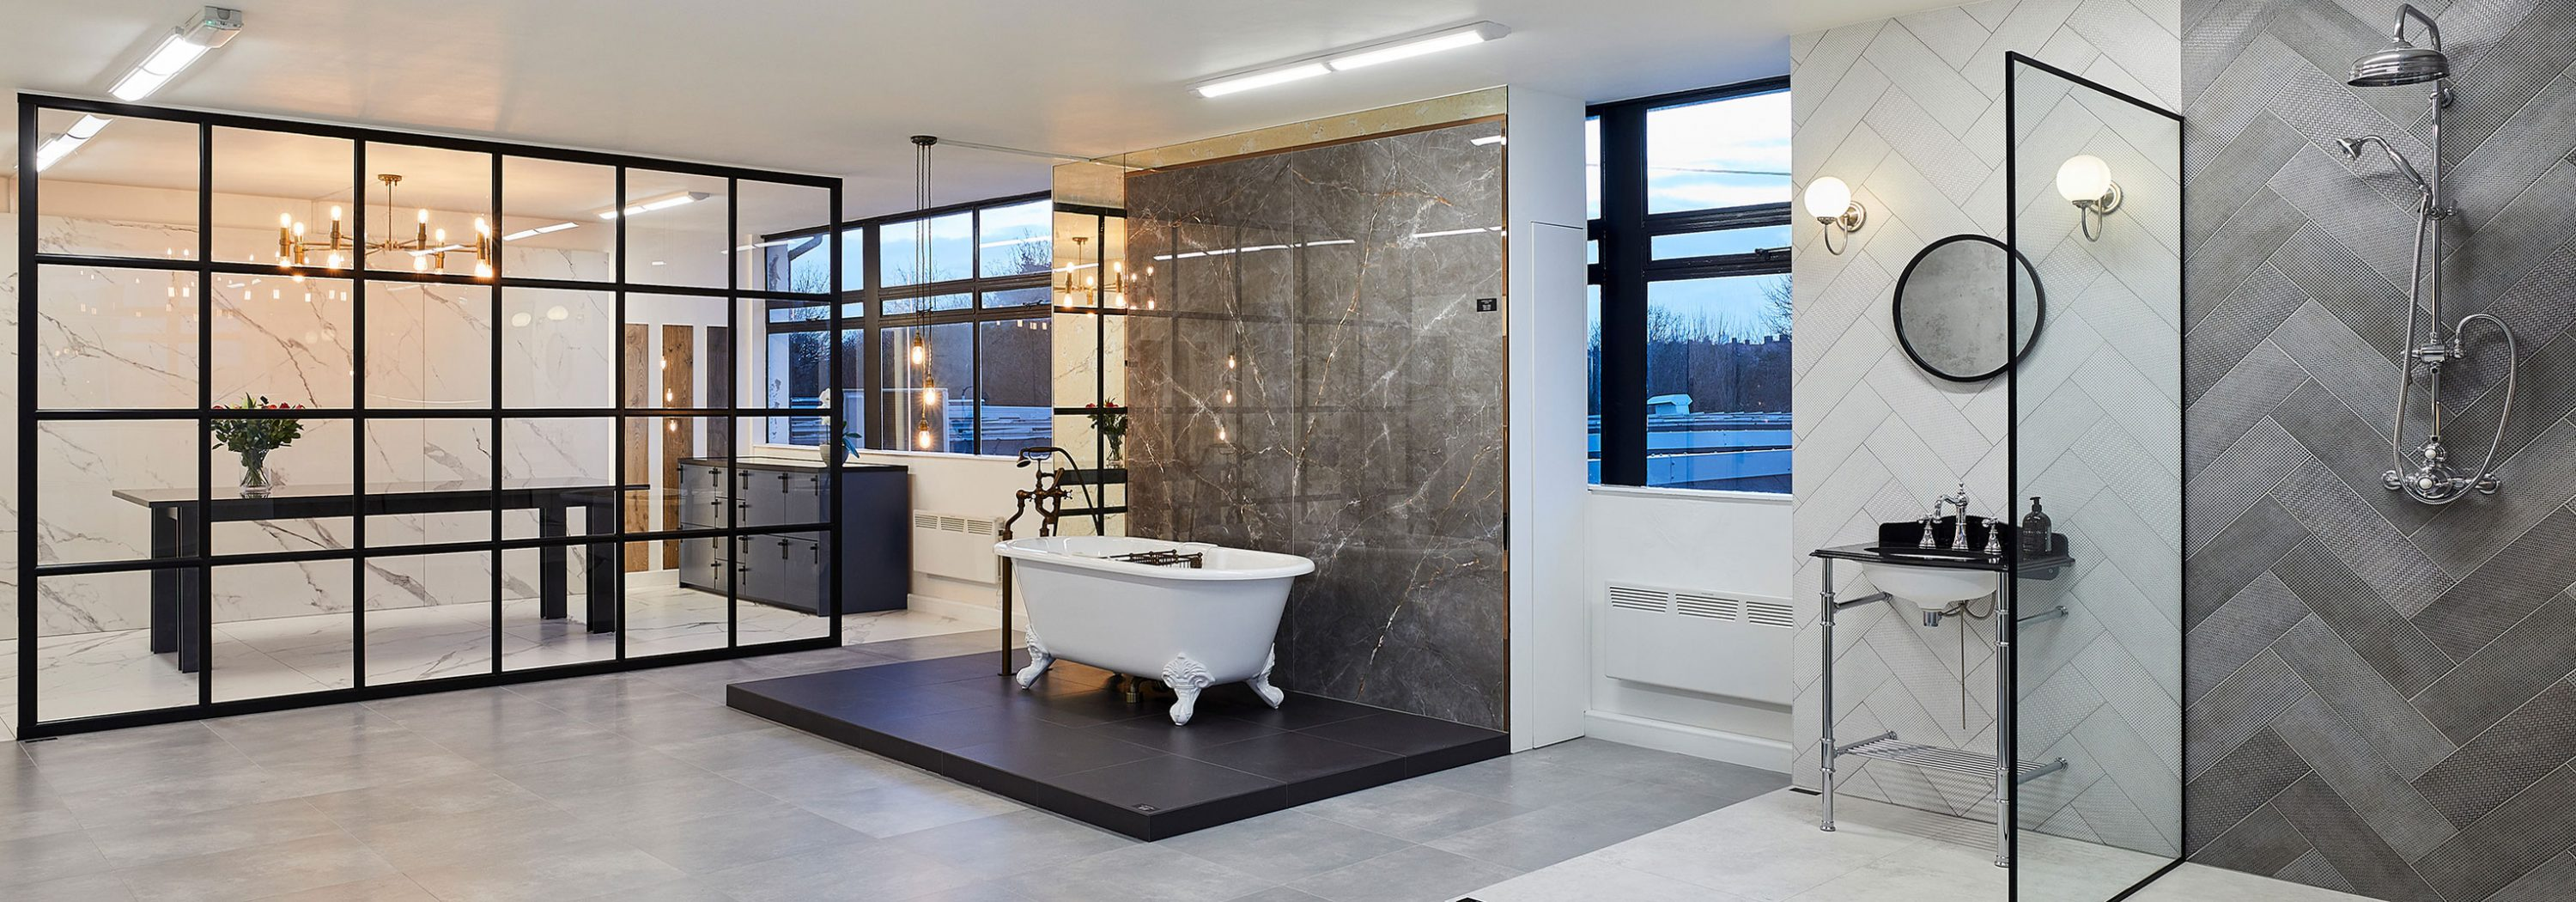 tiles-showroom-5-scaled